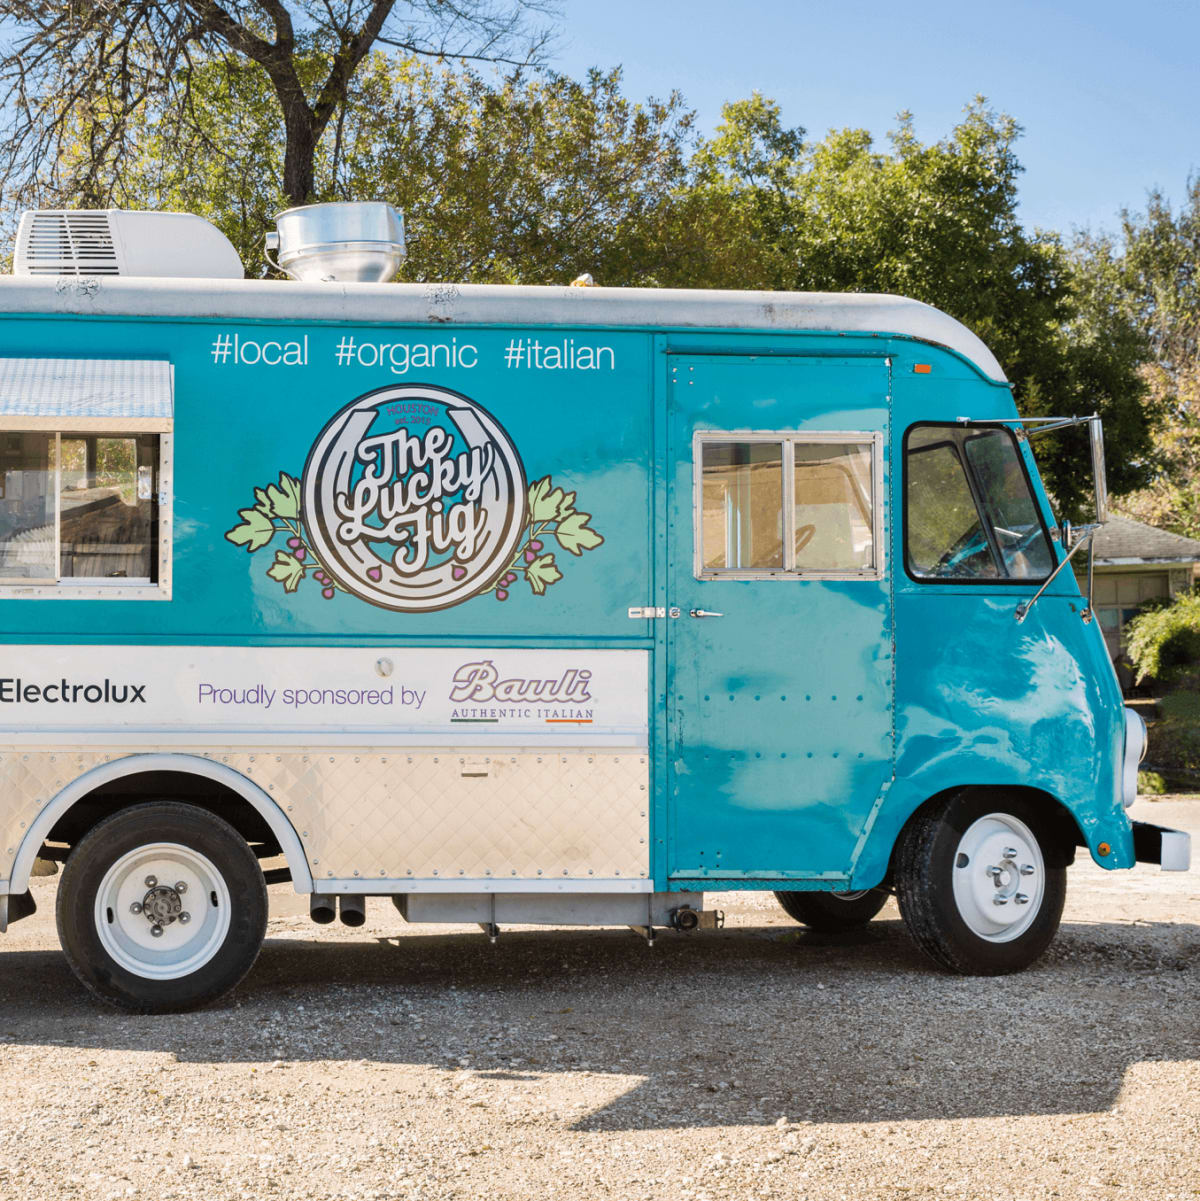 Lucky Fig food truck exterior